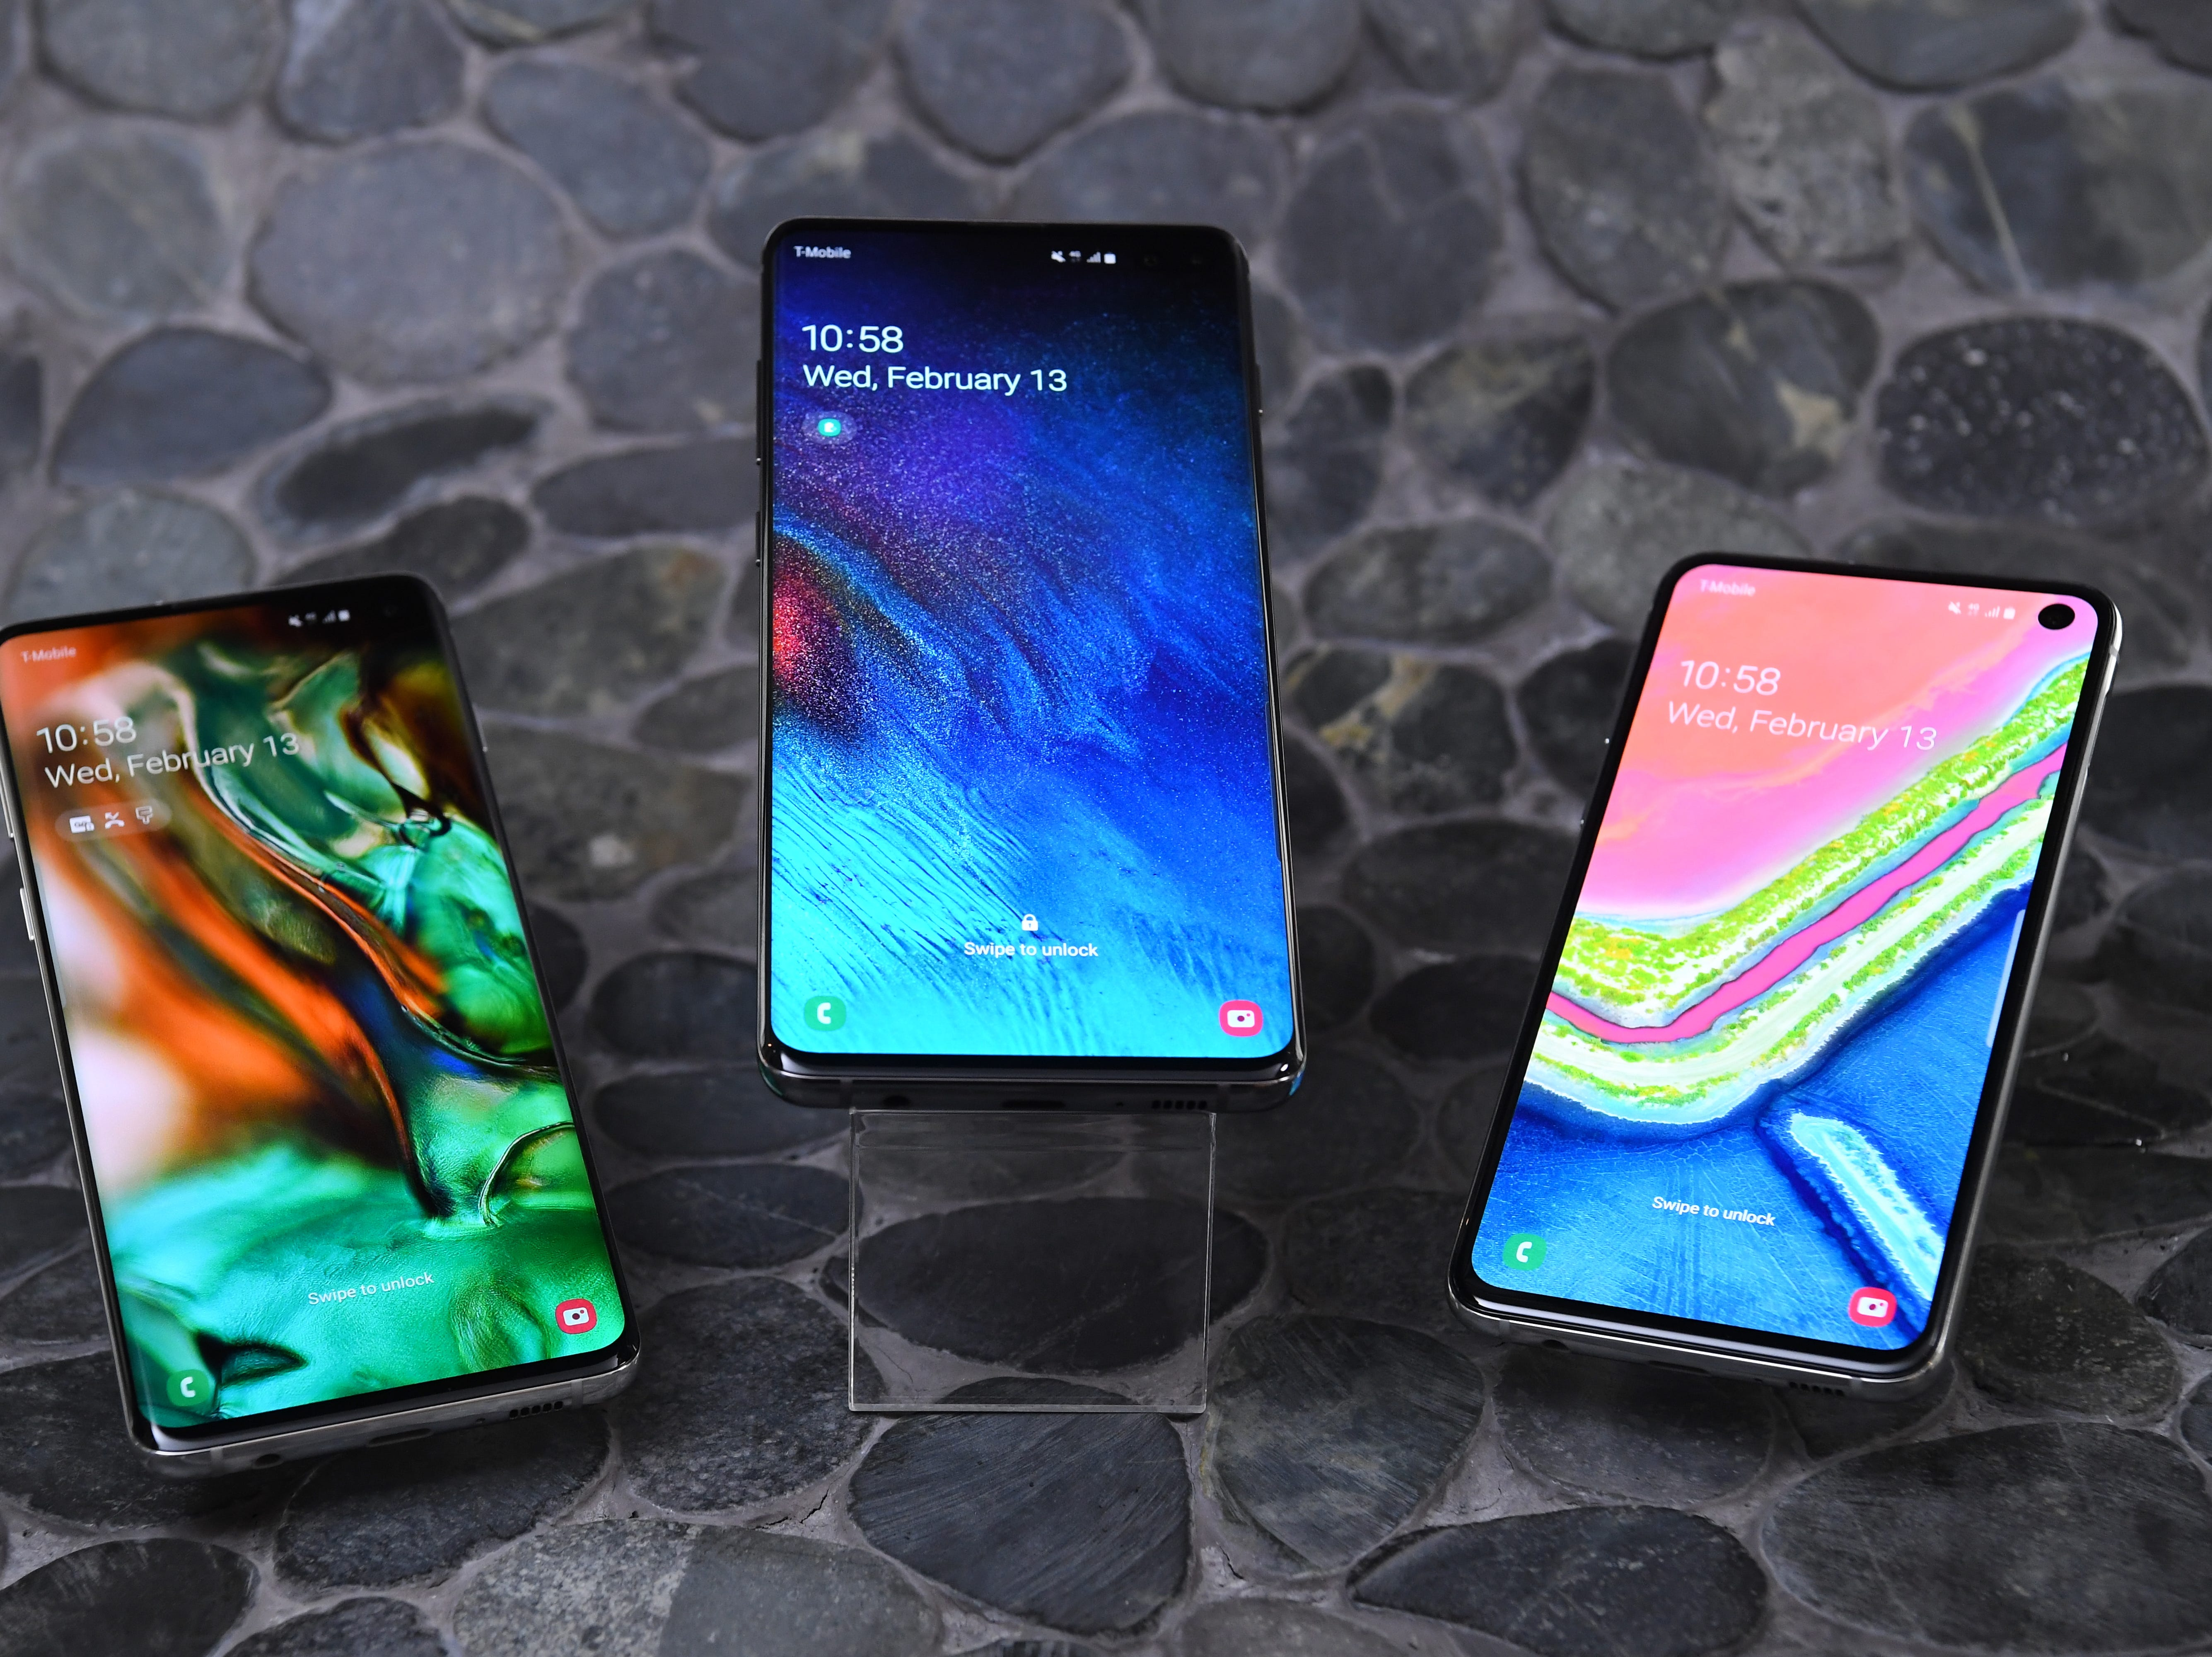 2/13/19 10:46:05 AM -- New York, NY  --  *** EMBARGO  UNTIL FEB 20, 2:30pm EST **** Samsung is introducing its next line of Galaxy S phones on February 20.   (l-r): Samsung Galaxy S10, Galaxy S10 Plus, Galaxy S10E --    Photo by Robert Deutsch, USA TODAY staff ORG XMIT:  RD 137807 Samsung 02/13/2019 [Via MerlinFTP Drop]